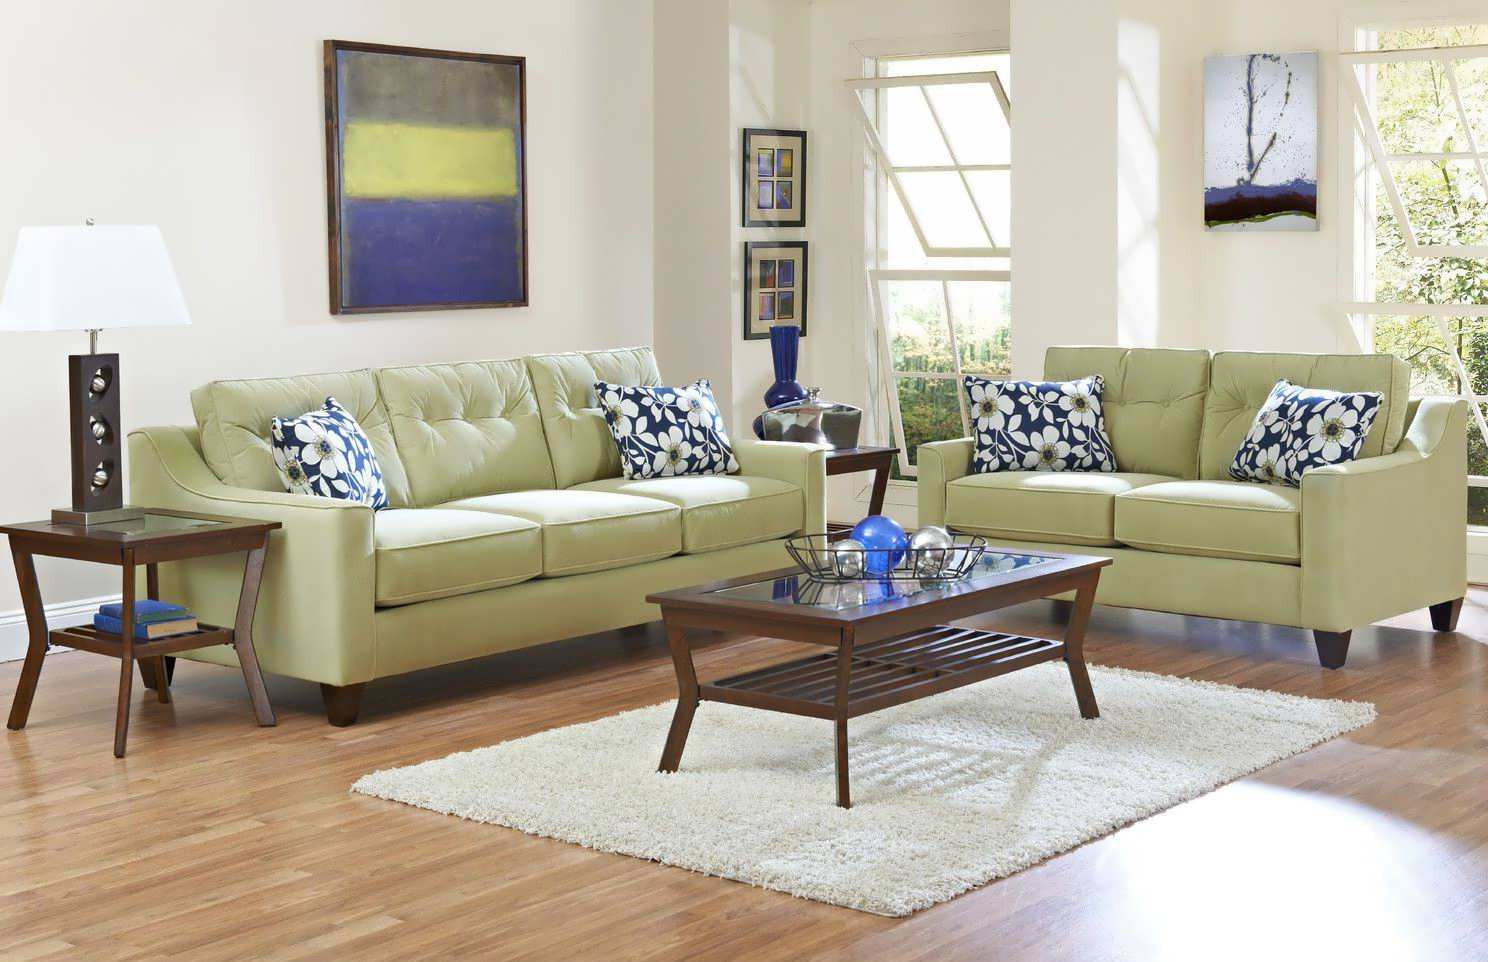 Mor Furniture Living Room Sets  Roy Home Design. Best Kitchen Countertops. How To Resurface Countertops In Kitchen. Cement Kitchen Floor. Glass Subway Tile Backsplash Kitchen. Kitchen Countertop Refinishing Kit. Cambria Kitchen Countertops. Kitchen Floor Materials. Modern Kitchen Wall Colors